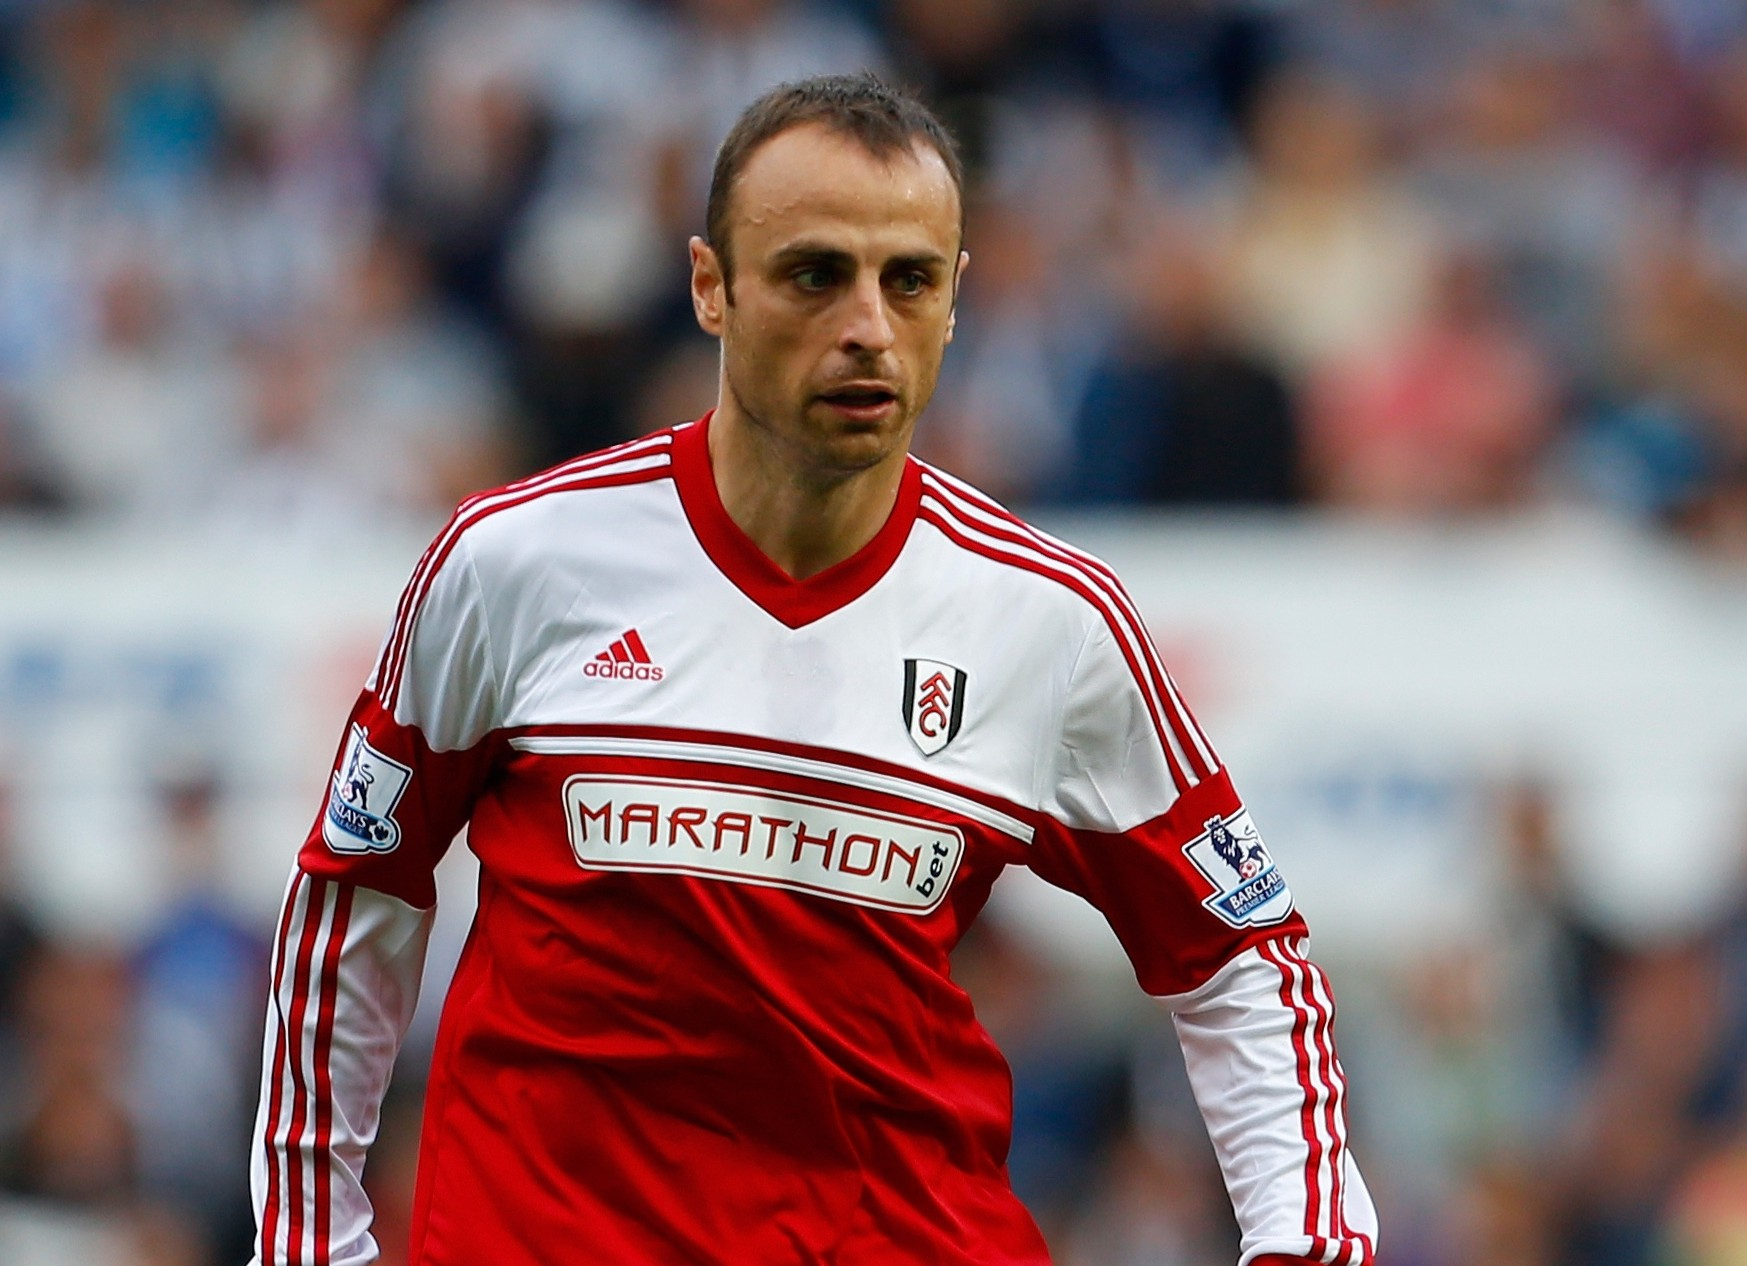 Arsenal have decided against signing Dimitar Berbatov (Picture: Getty)